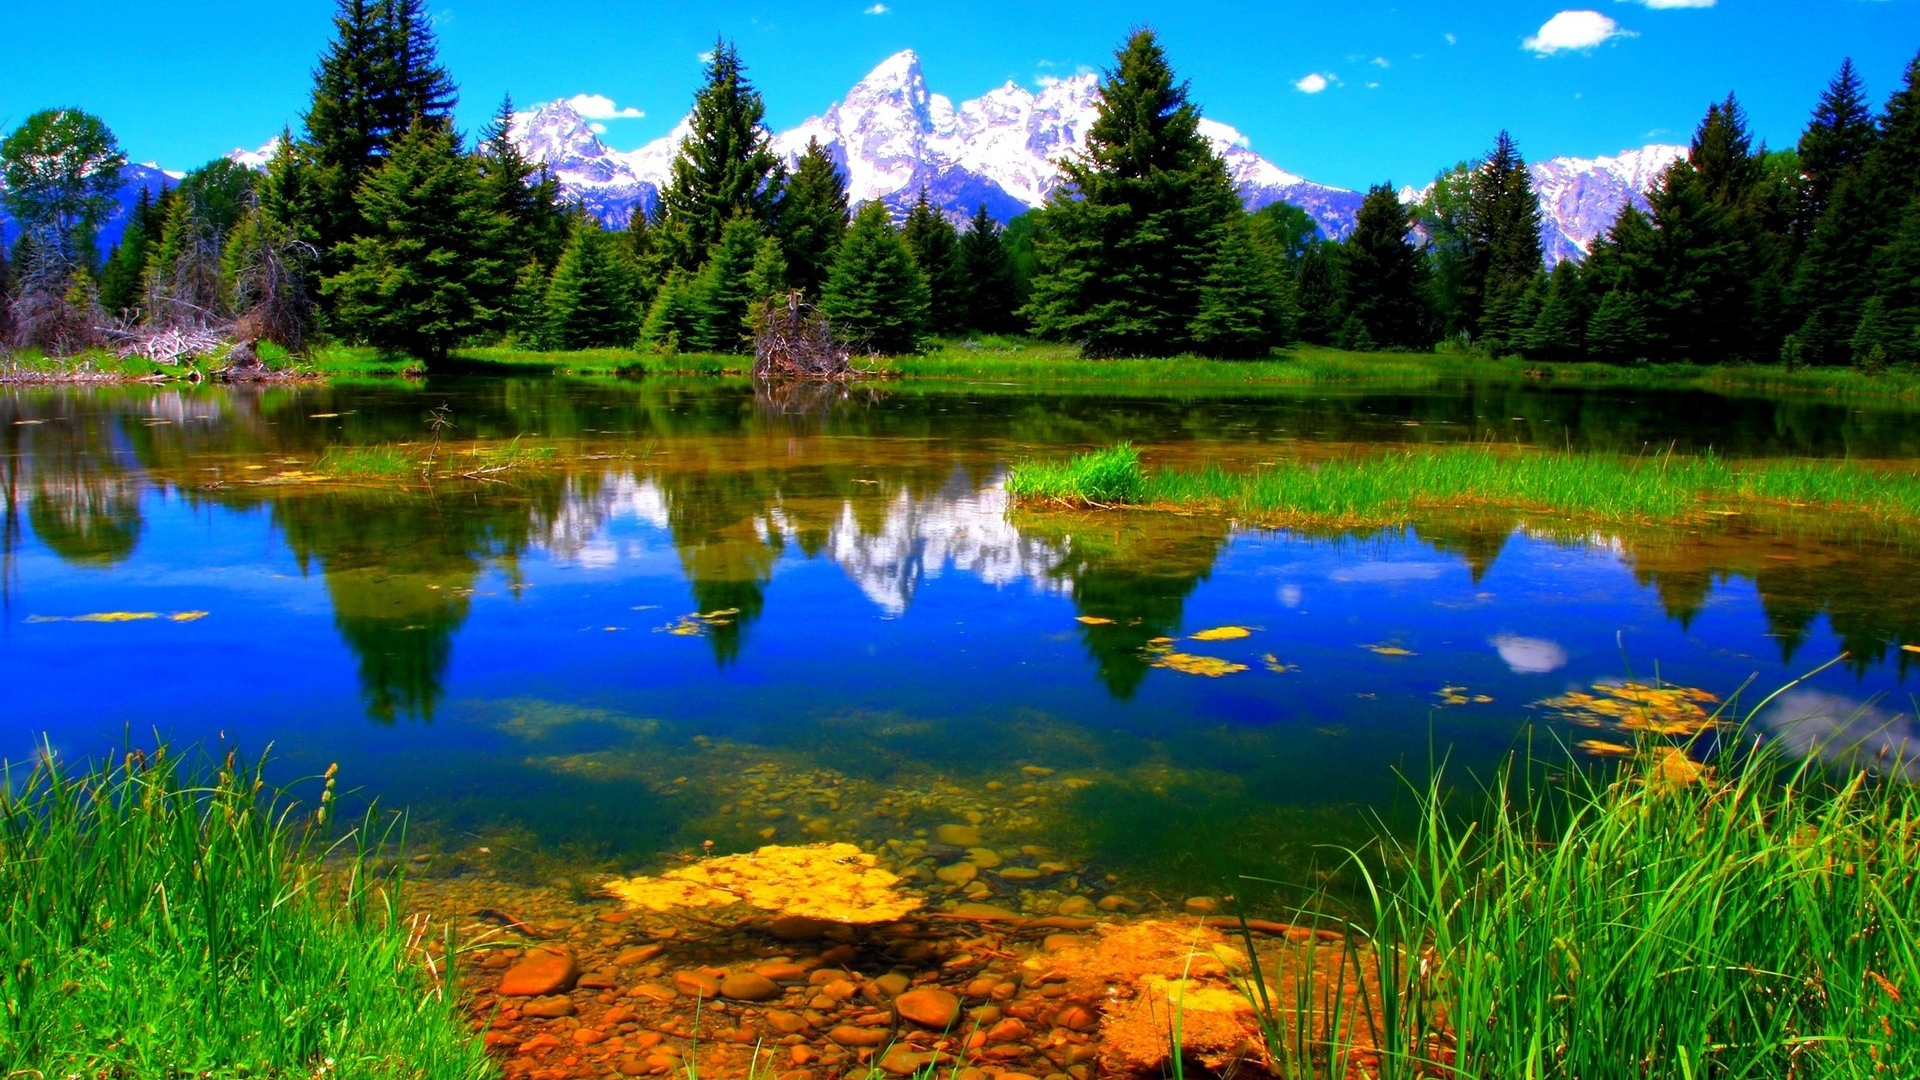 Amazing landscape hd wallpapers 1080p With HD Windows Wallpaper